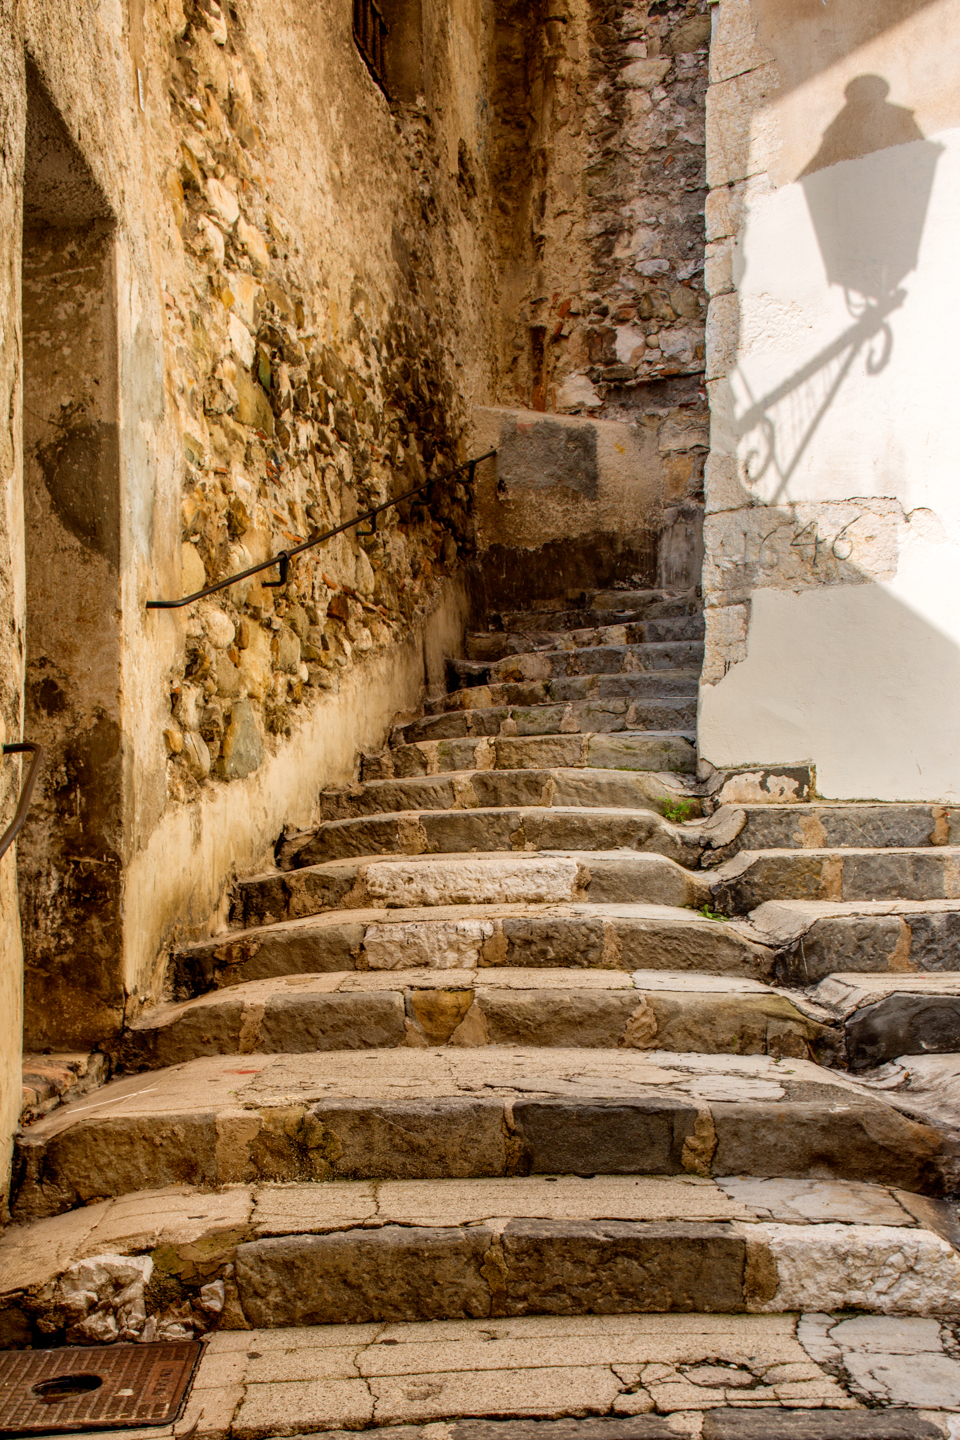 Stairs, Menton, France, October 14, 2013